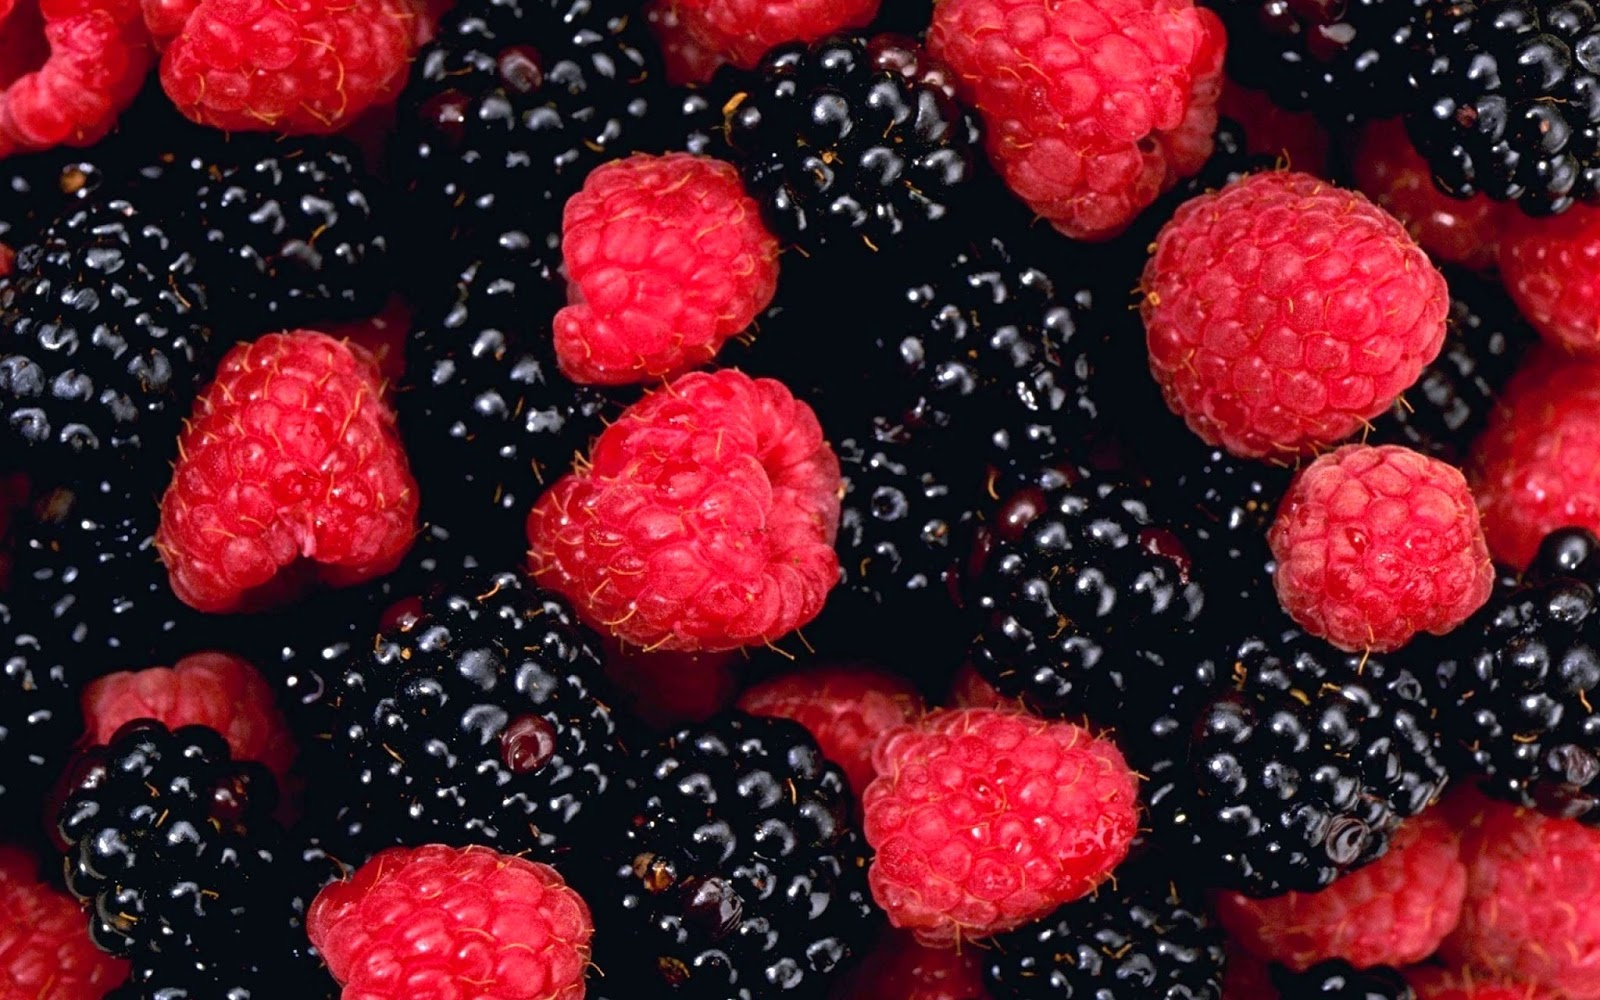 Fruits 3d wallpapers - Good Morning Blackberry Fruit Wallpaper